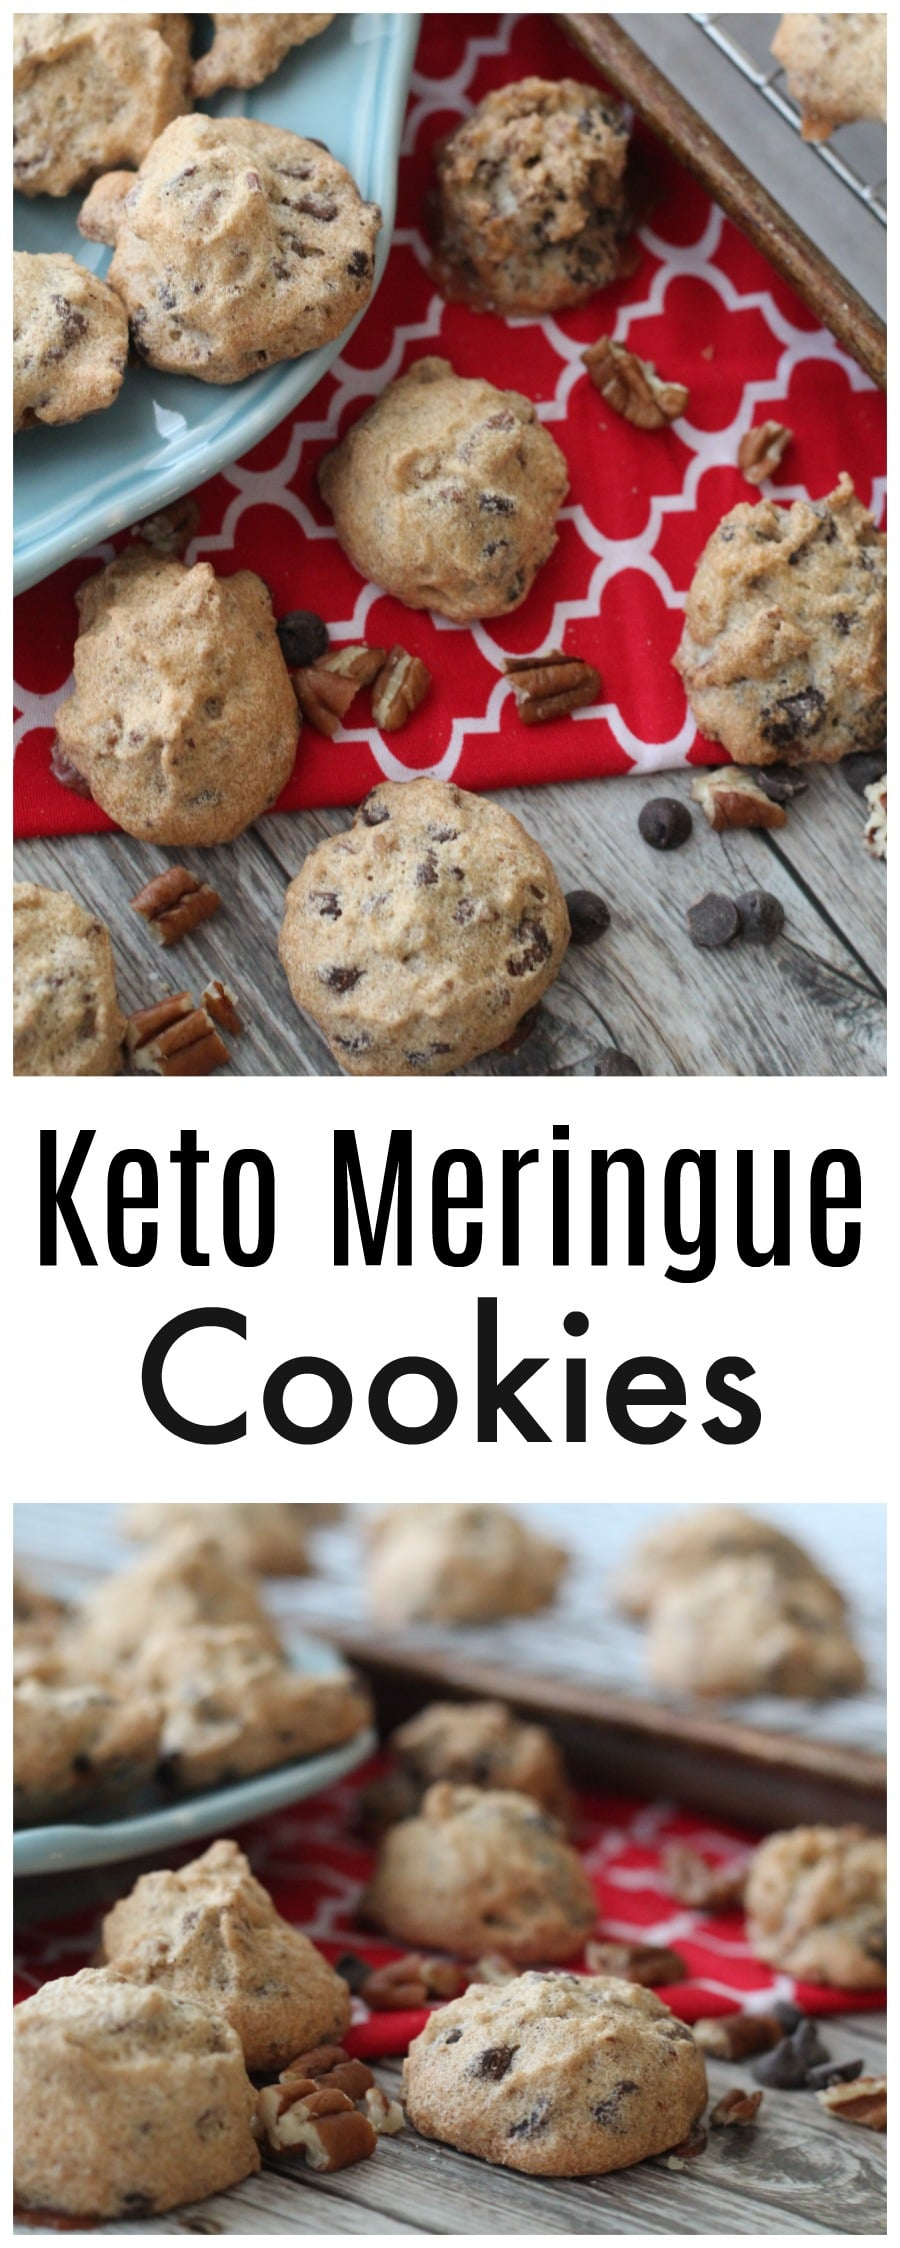 If you've been searching for a KetoSugar-Free Meringue Cookie, this is the recipe for you with pecans and chocolate chips!